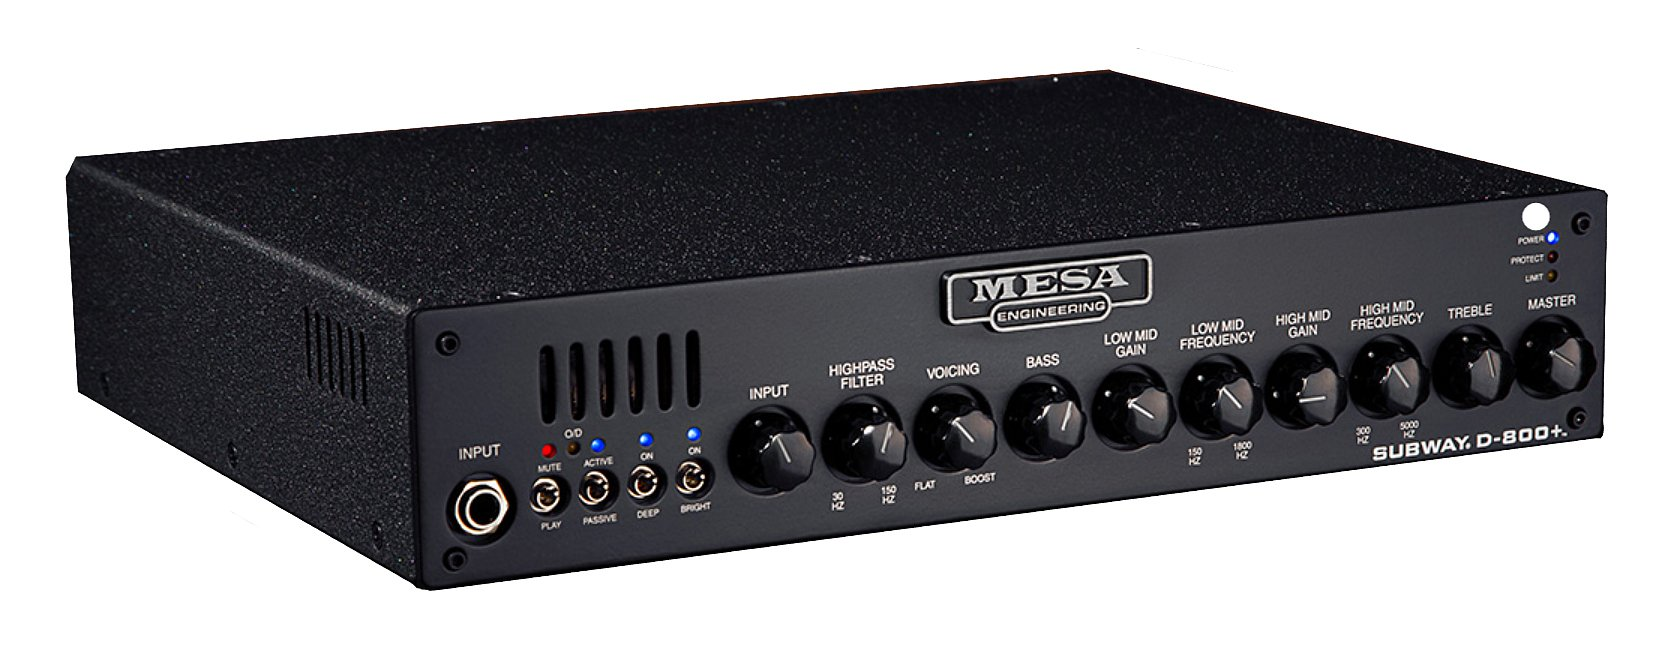 mesa boogie subway 800 subway d 800 800w bass amp head full compass systems. Black Bedroom Furniture Sets. Home Design Ideas